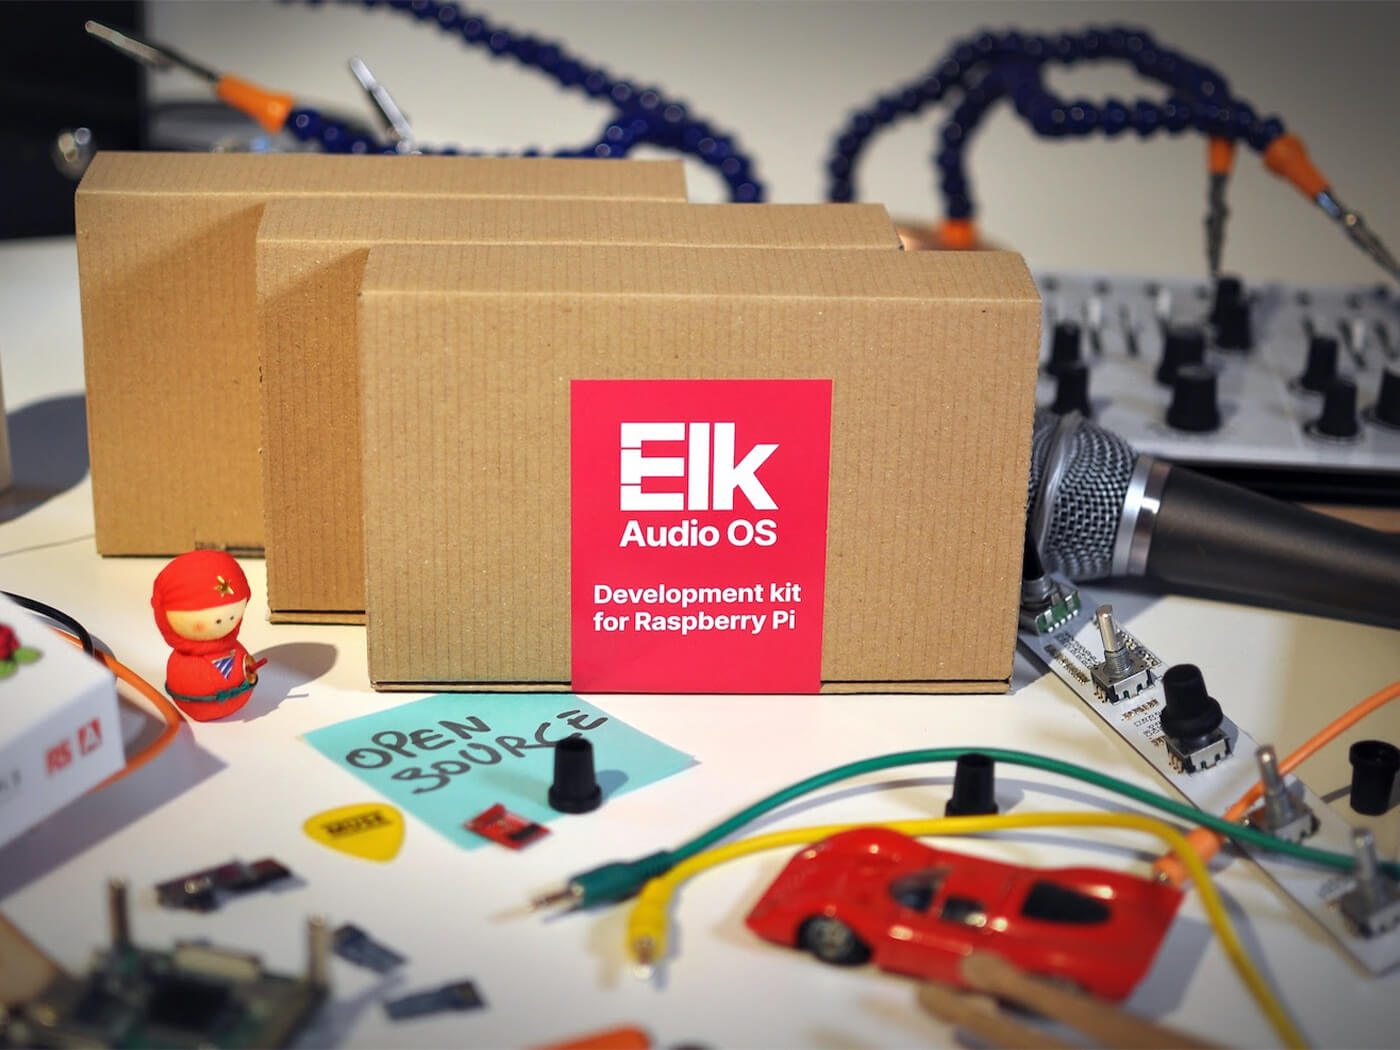 Elk Audio OS goes open source with a Raspberry Pi development kit